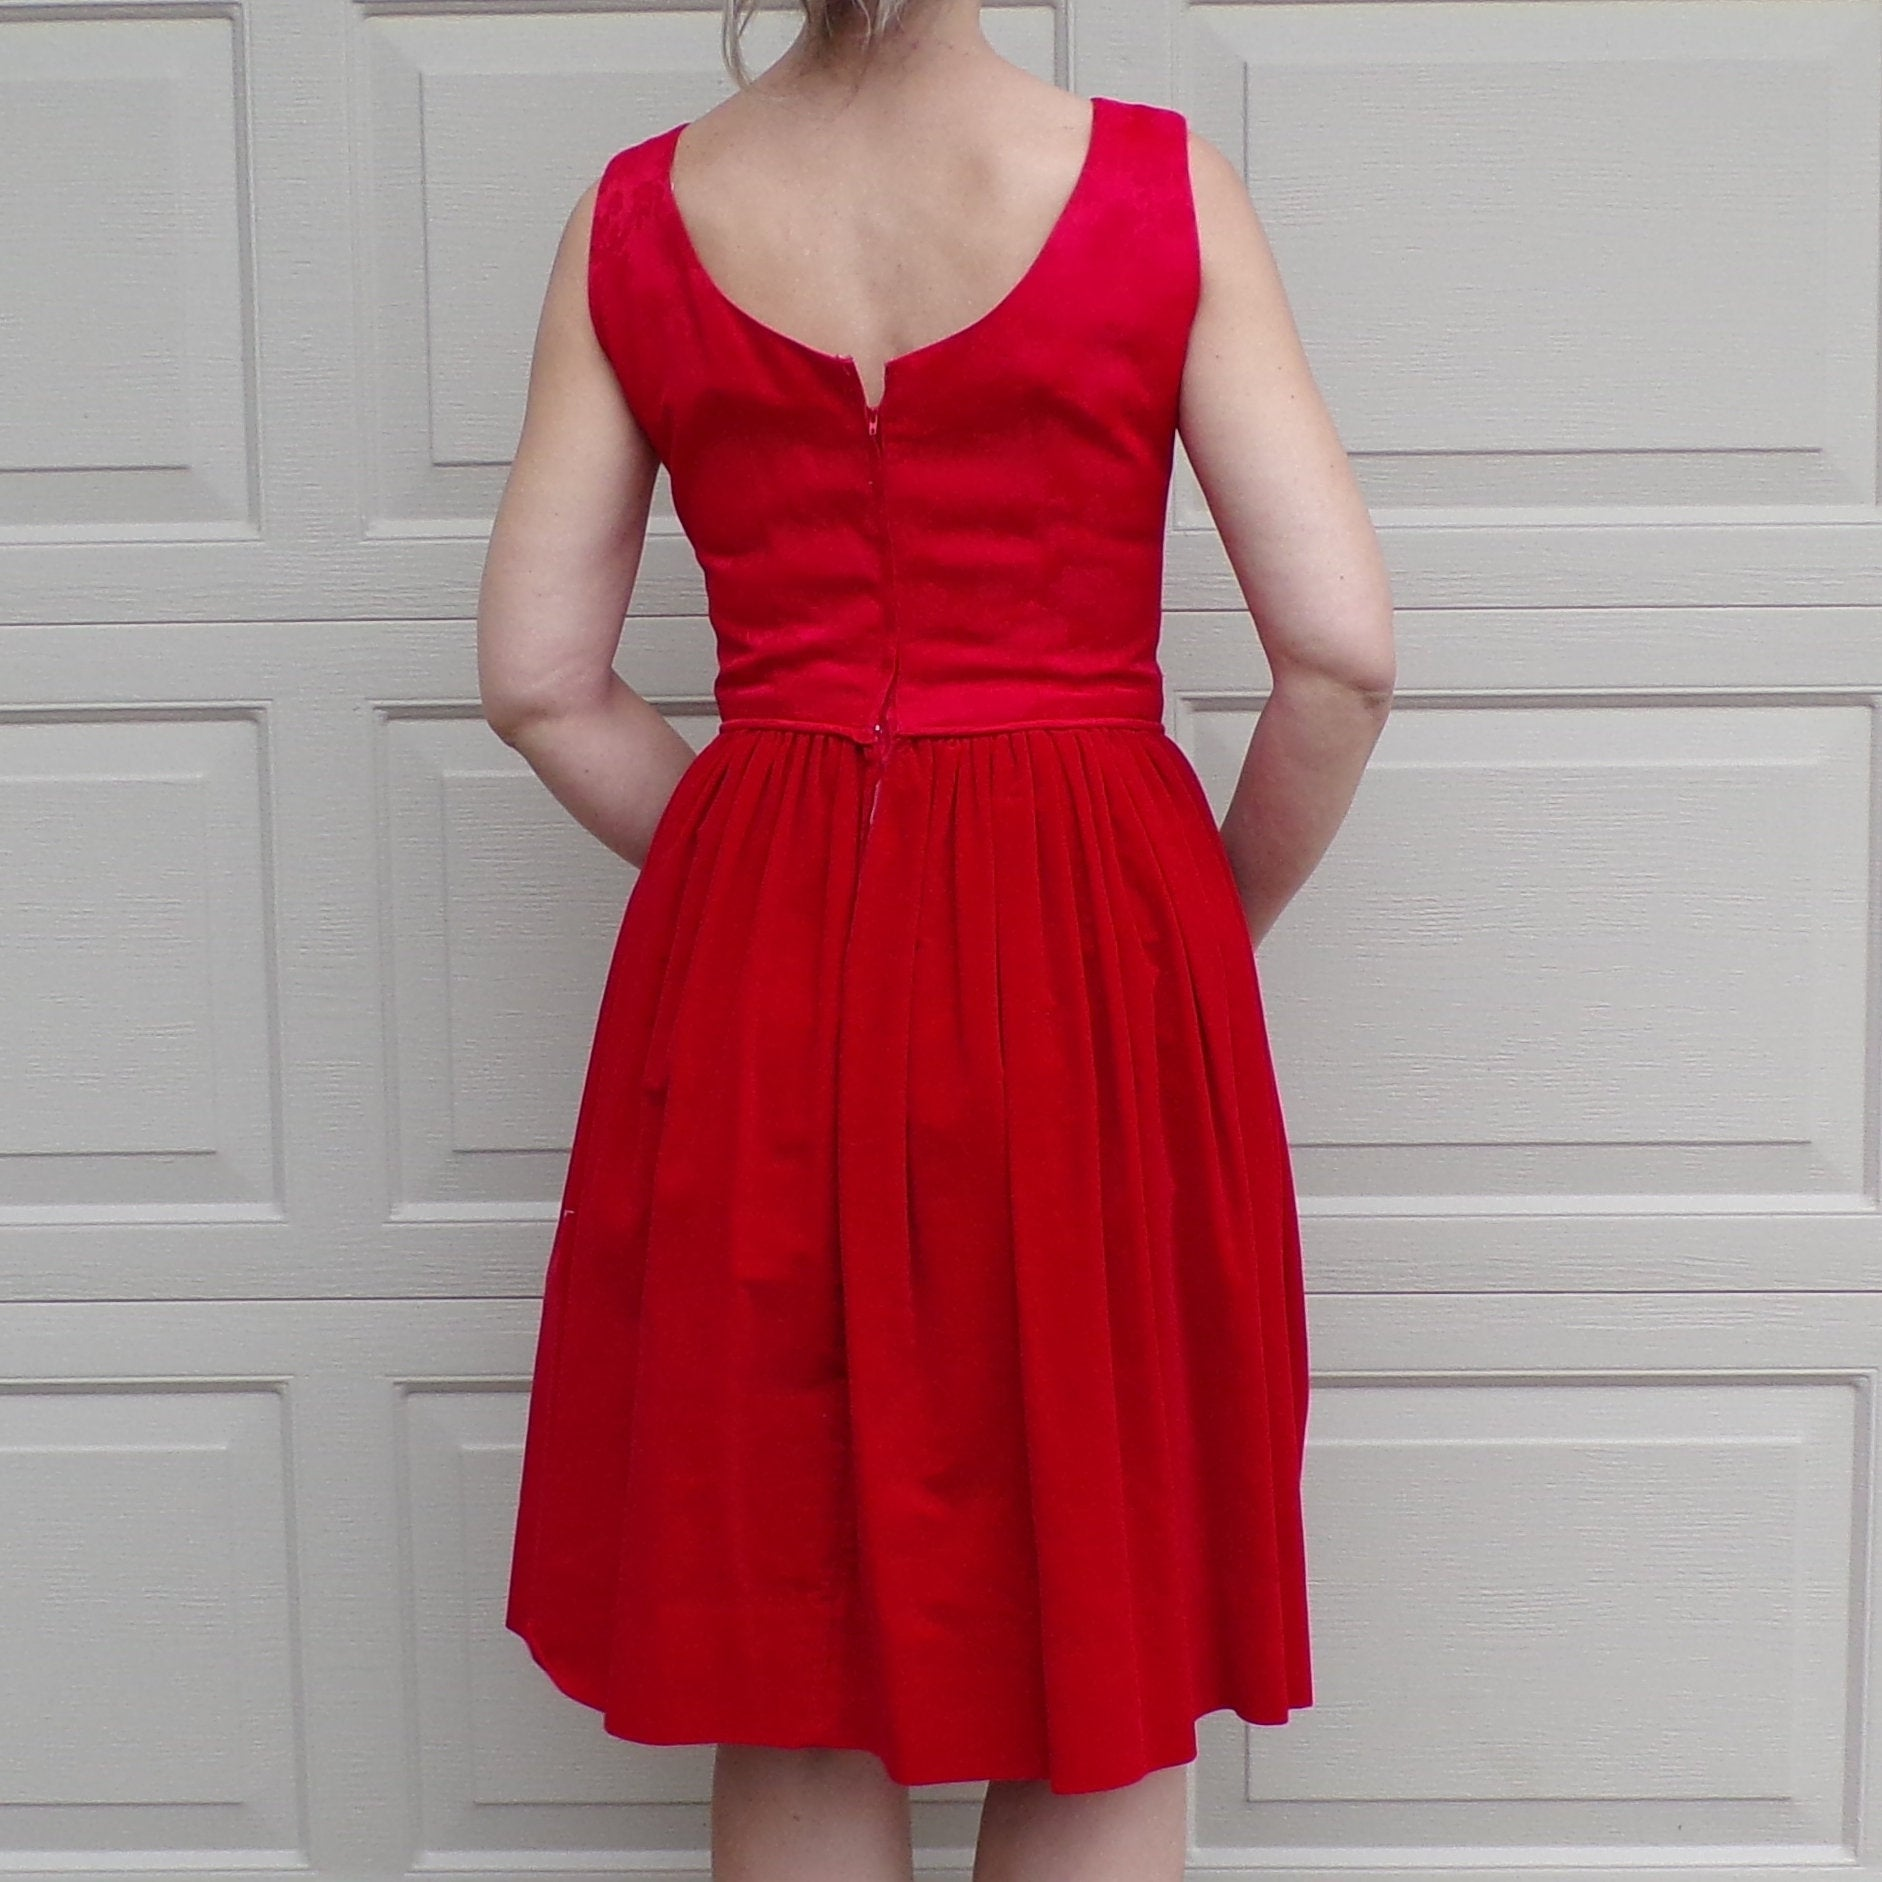 RED midcentury PARTY DRESS brocade and velvet 50's 60's S (G7)